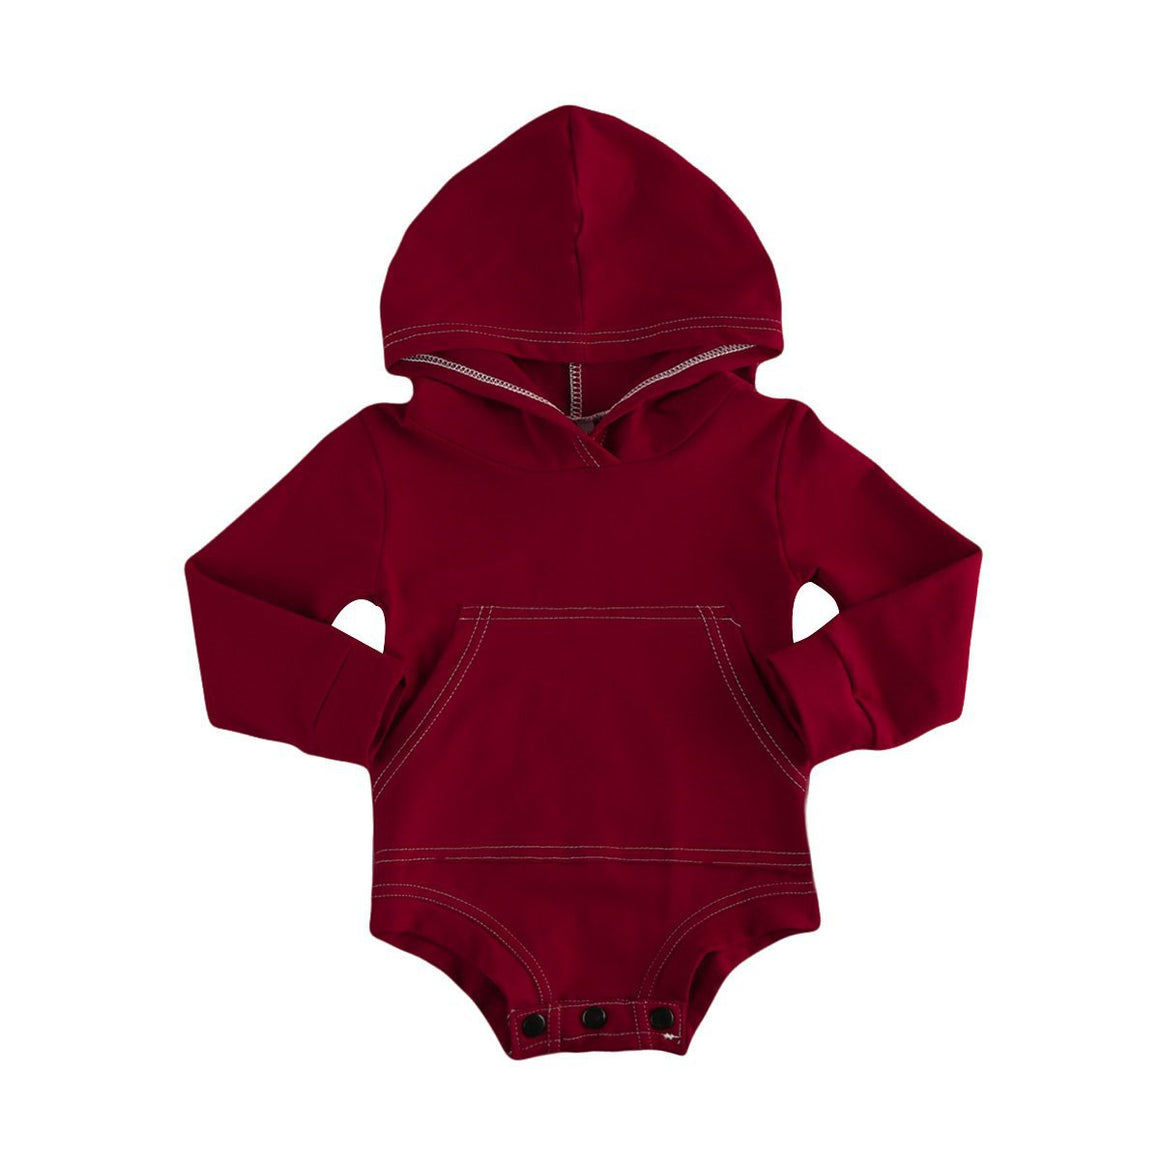 Chloe Hooded Romper